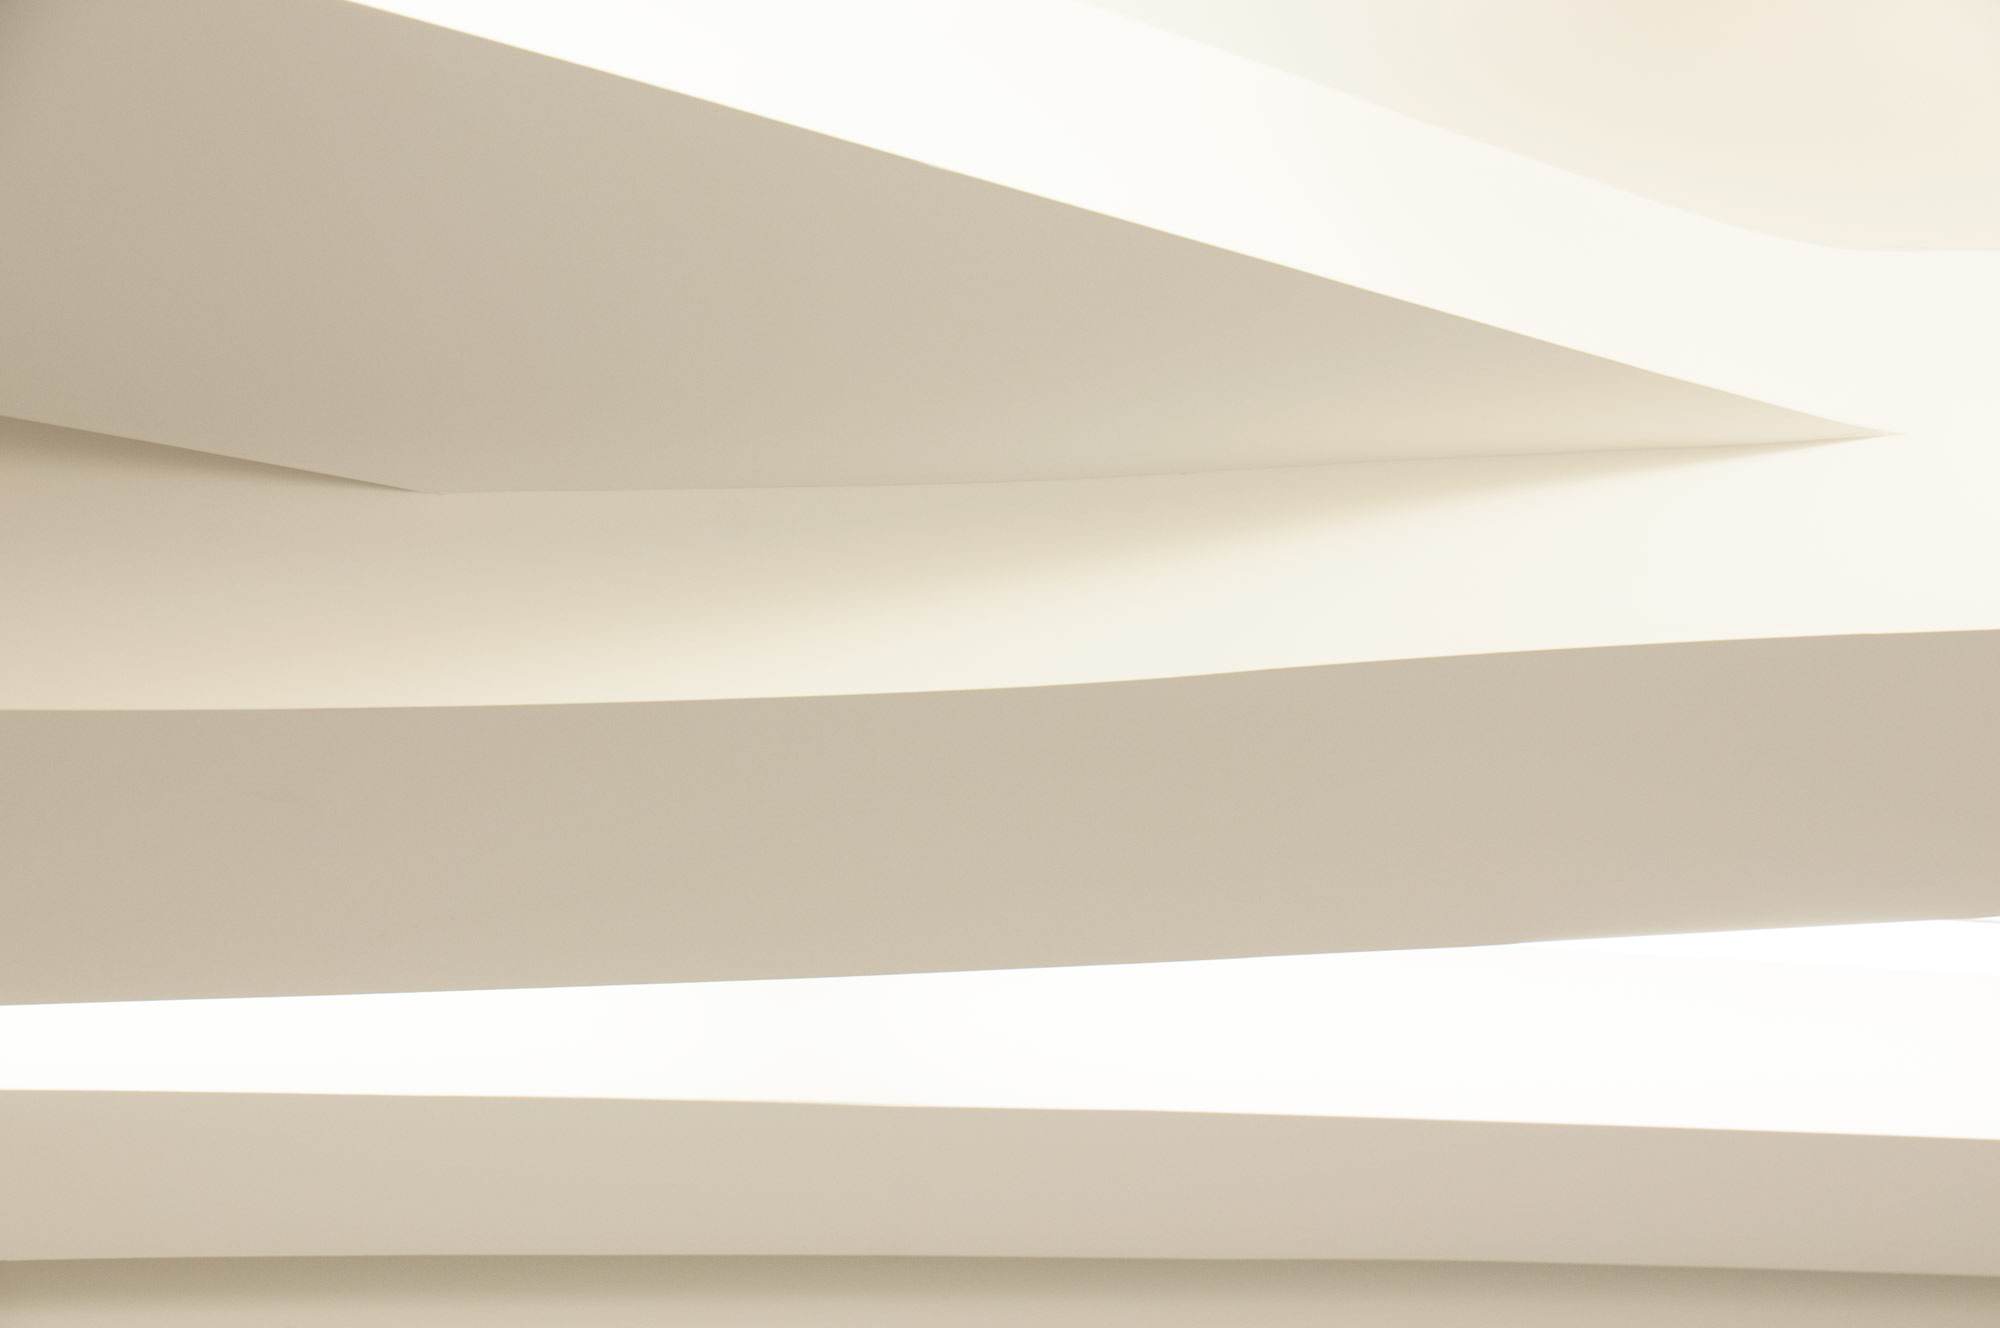 Curving Ceiling Plane Architectural Detail